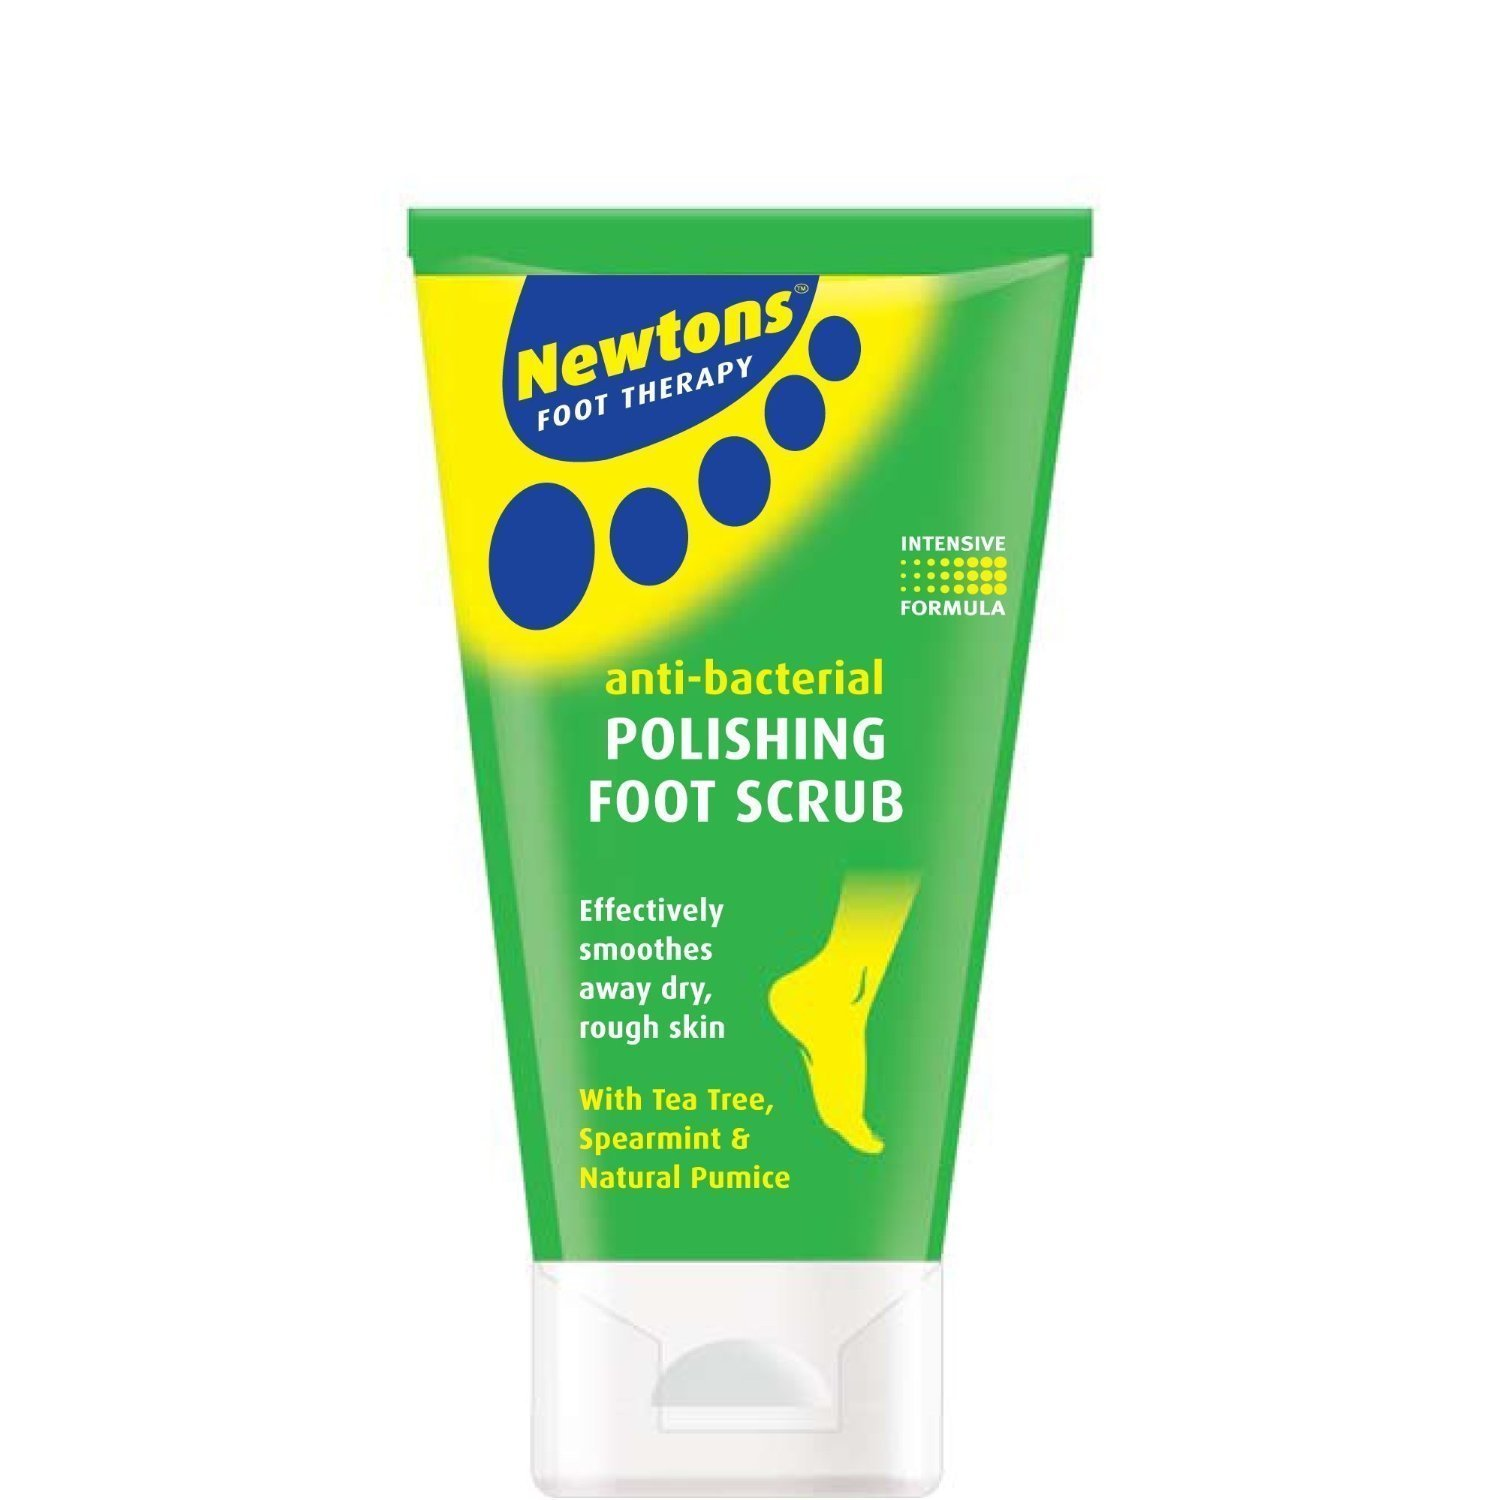 Newtons Polishing Foot Scrub 150ml Brodie & Stone 07010NEW